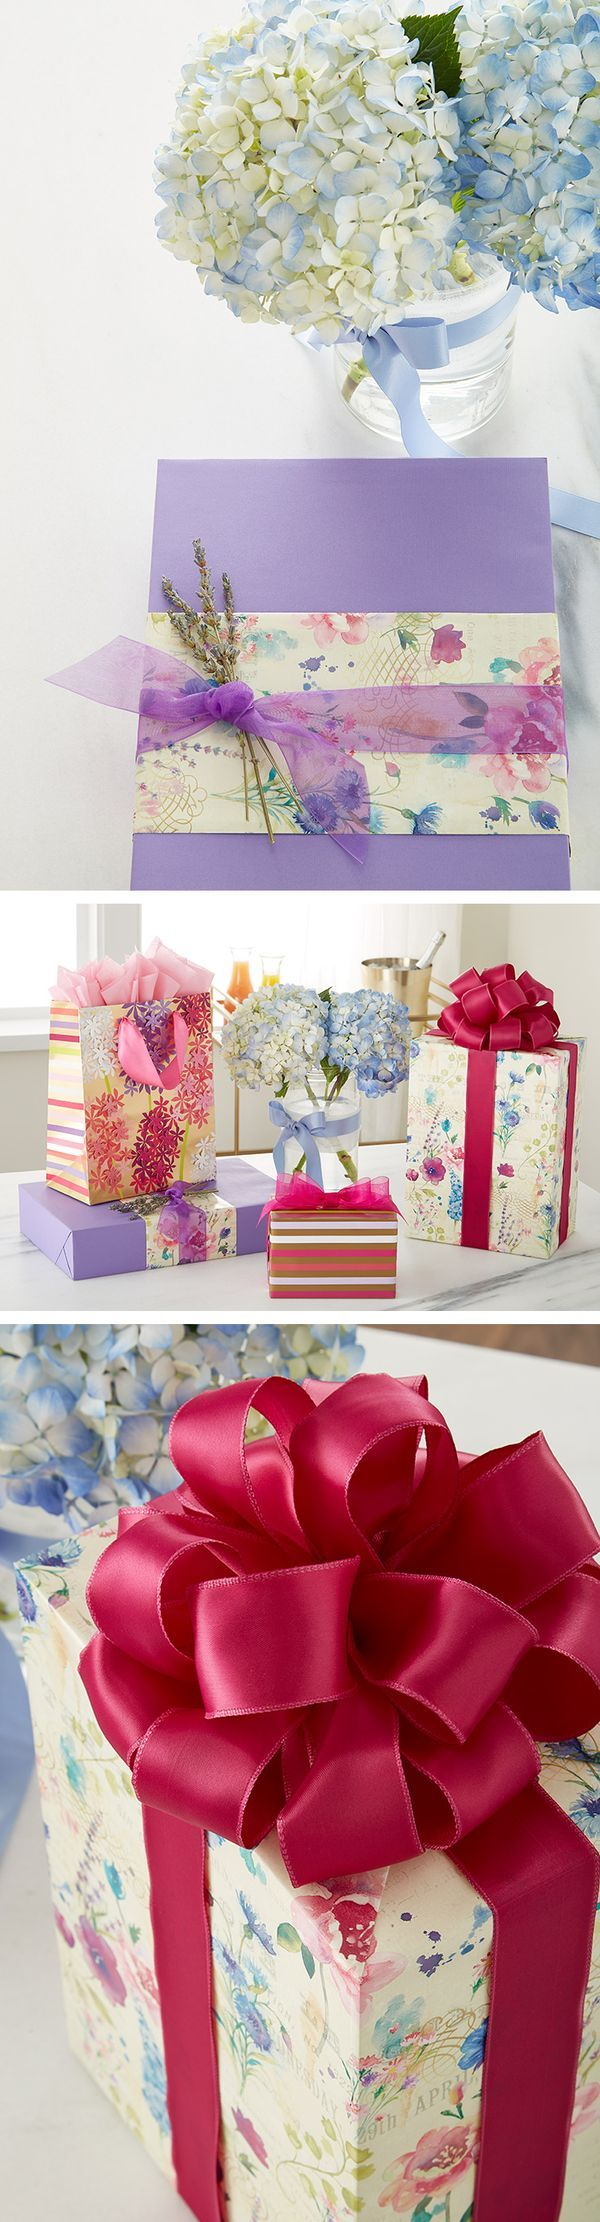 Fresh florals for spring that won't fade with our gift packaging!